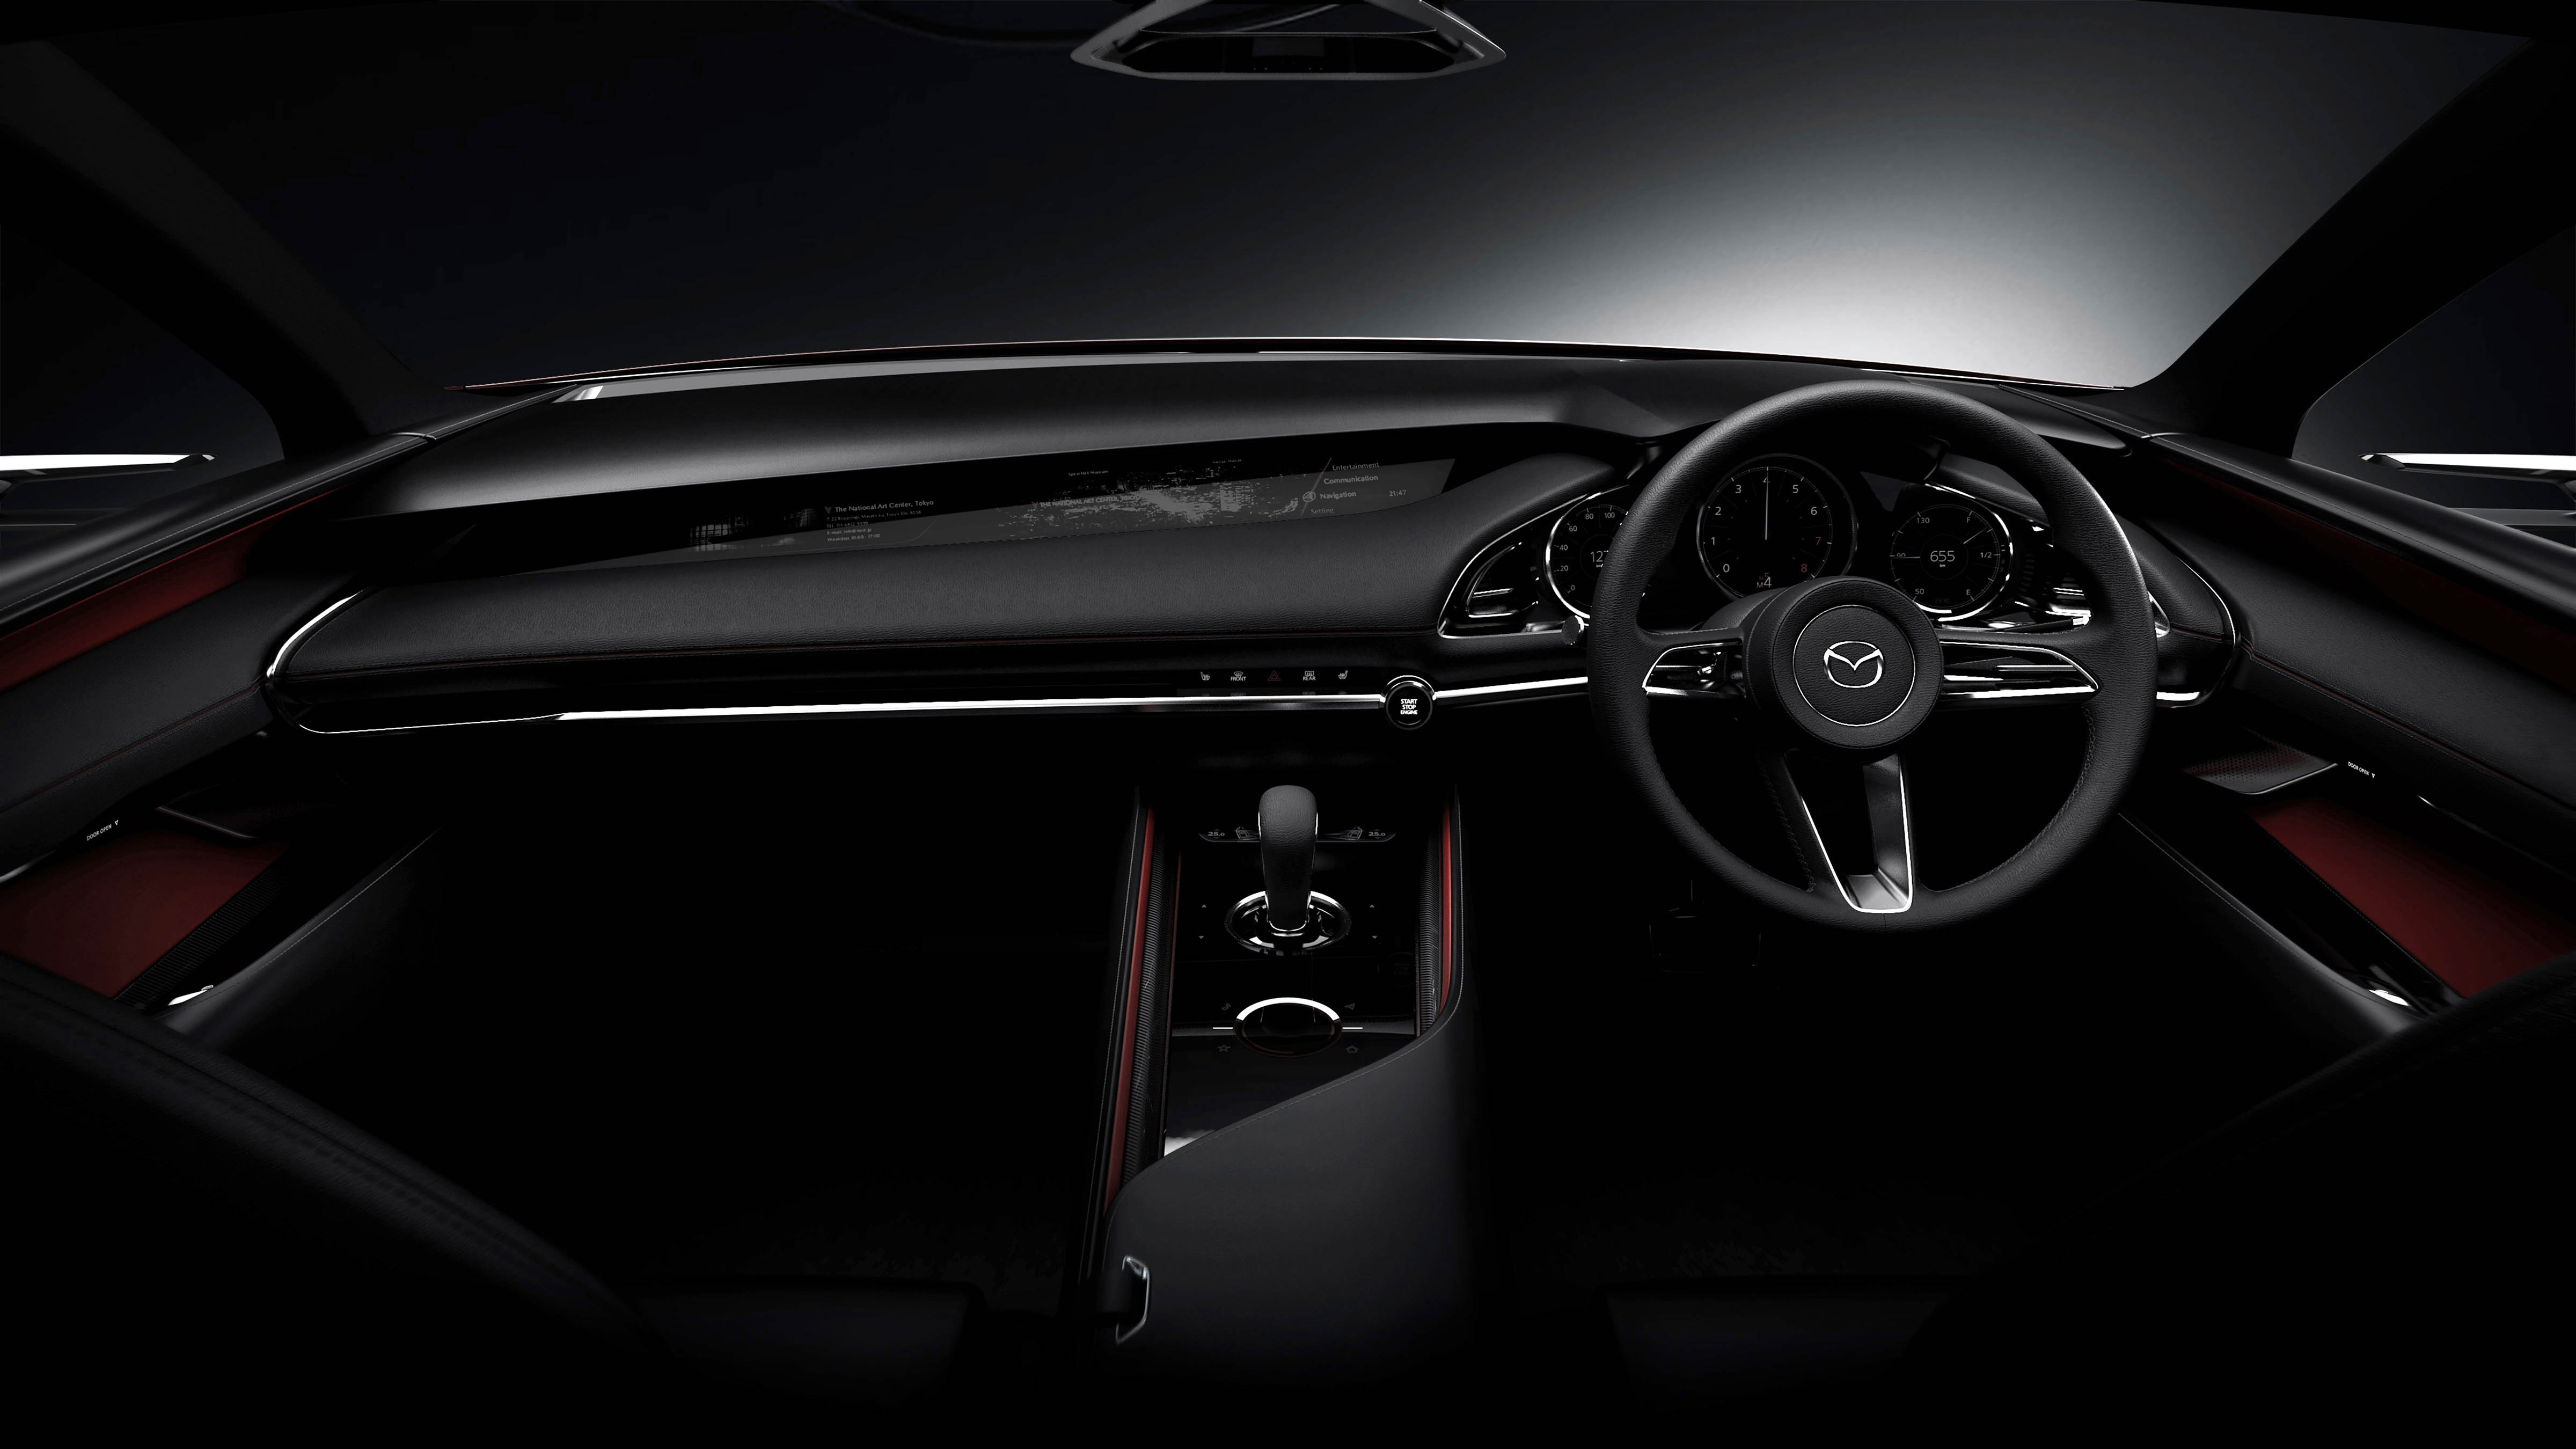 This together with the one on the spoiler function as additional brake lights. & Tokyo 2017: Mazda Kai Concept u2013 SkyActiv-Vehicle Architecture ... azcodes.com